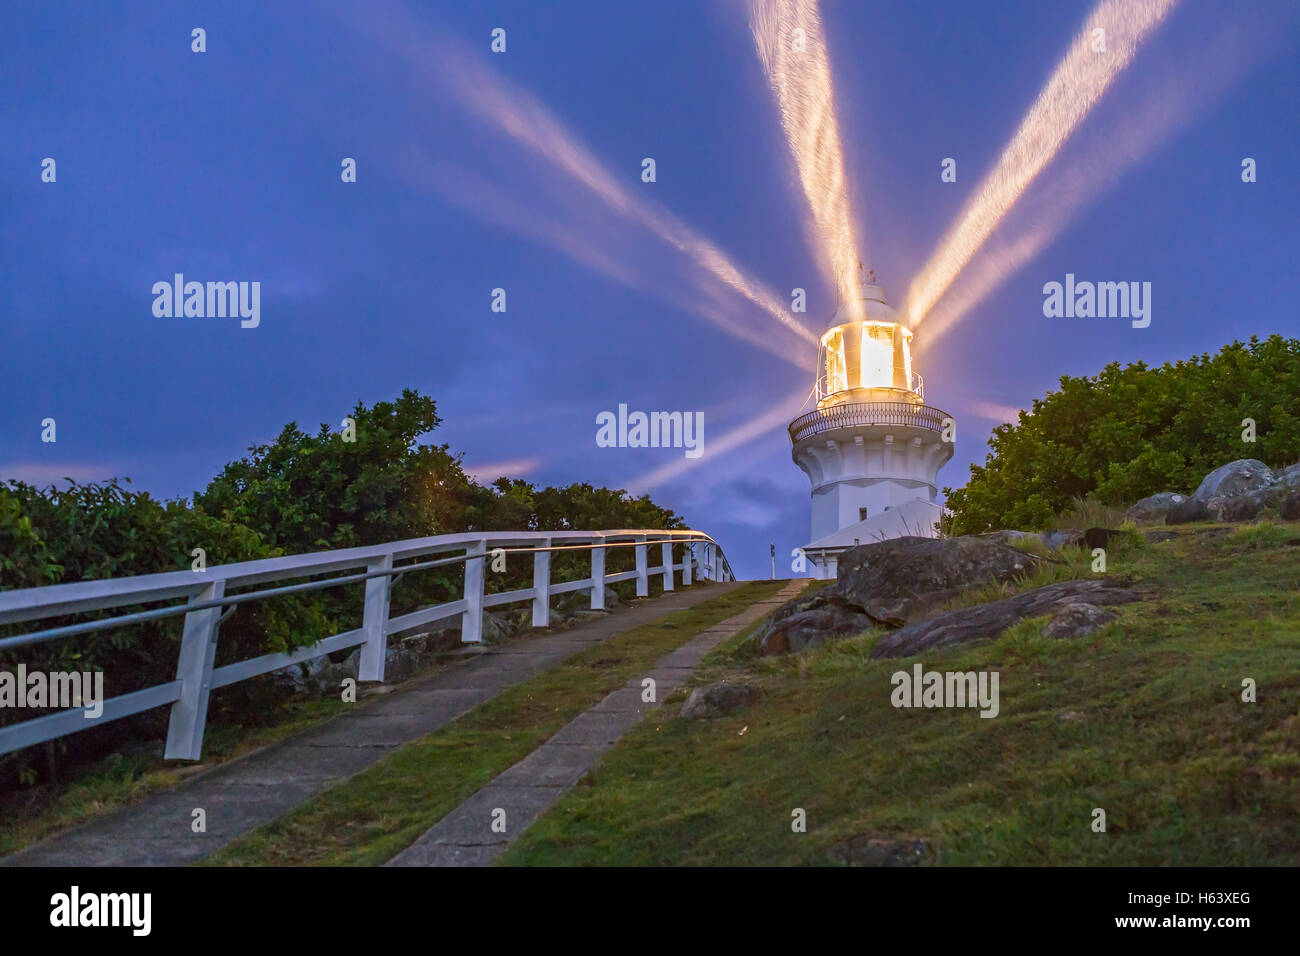 The Smoky Cape Lighthouse with its beams in the cloudy evening twilight shining in the light rainfall. This is near - Stock Image